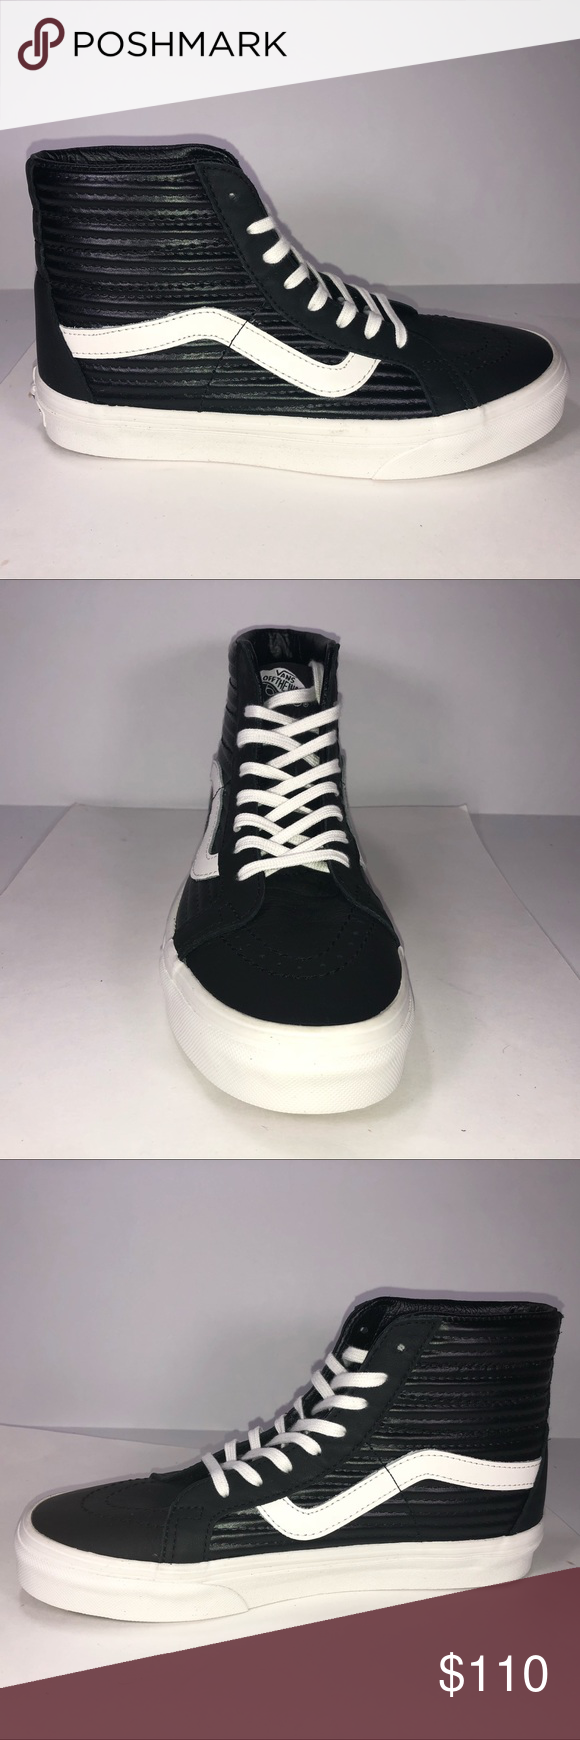 9704ec80df40 I just added this listing on Poshmark: Vans Sk8 Hi Moto Leather Black &  White Sneakers. #shopmycloset #poshmark #fashion #shopping #style #forsale # Vans # ...